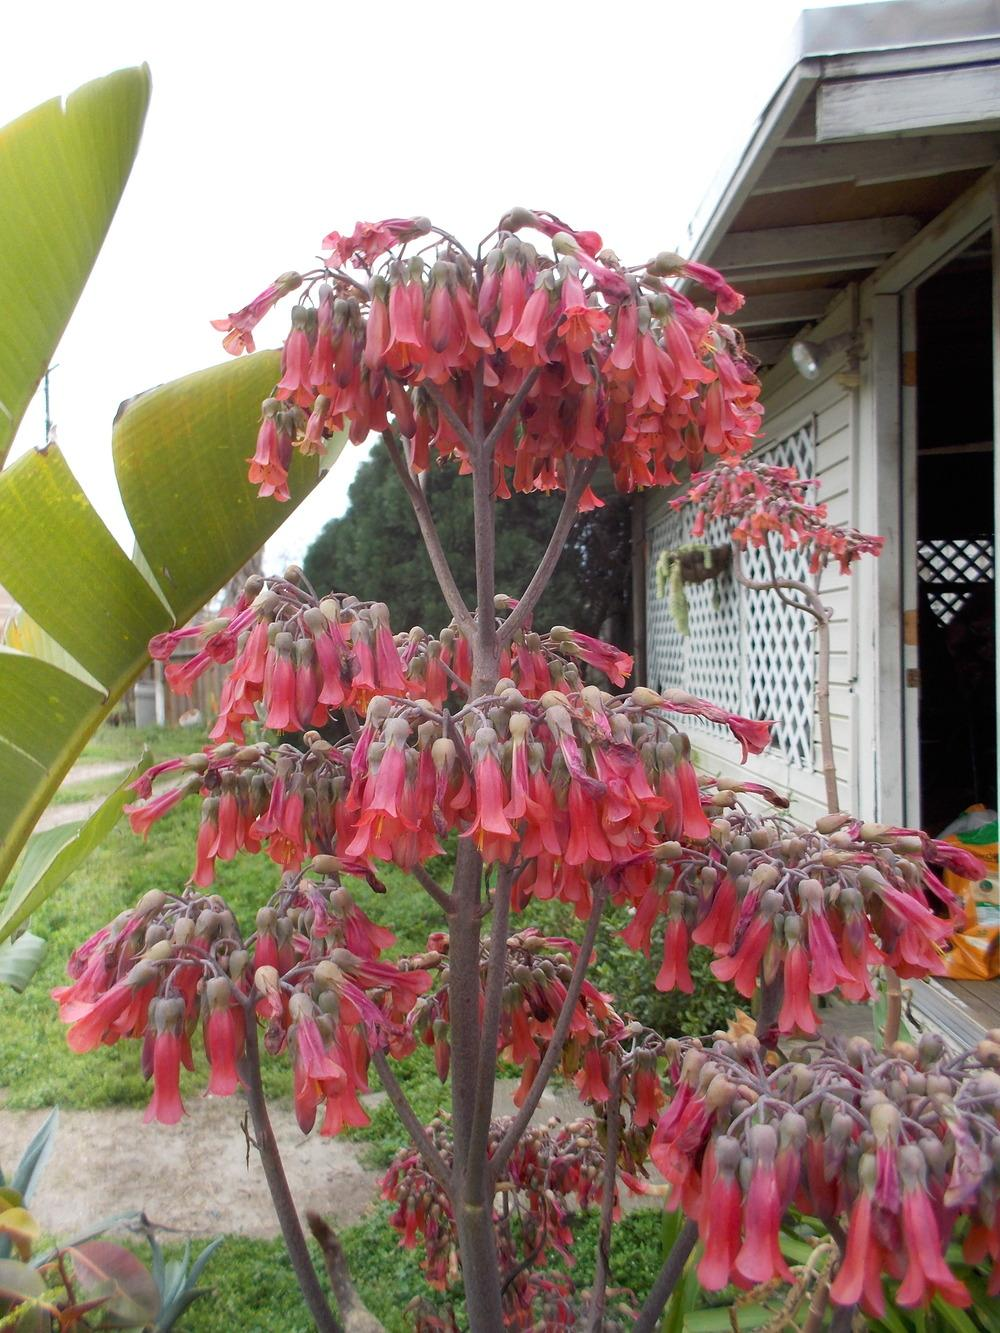 Chandelier plant kalanchoe delagoensis in the kalanchoes location blondmyks backyard corpus christi txdate 2015 03 15sample of mozeypictures Gallery